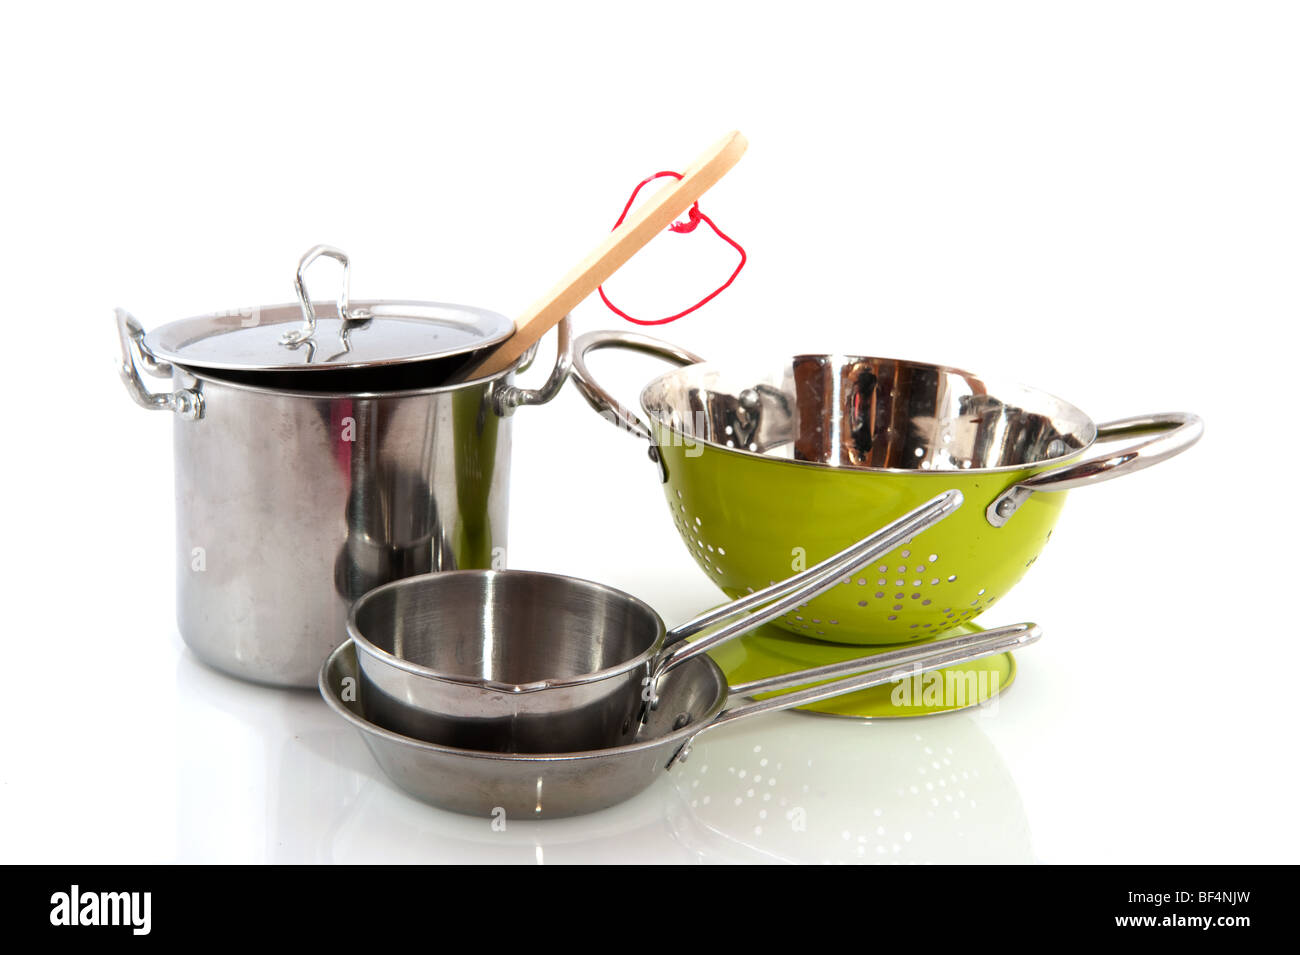 kitchen equipment with pots and pans isolated over white - Stock Image